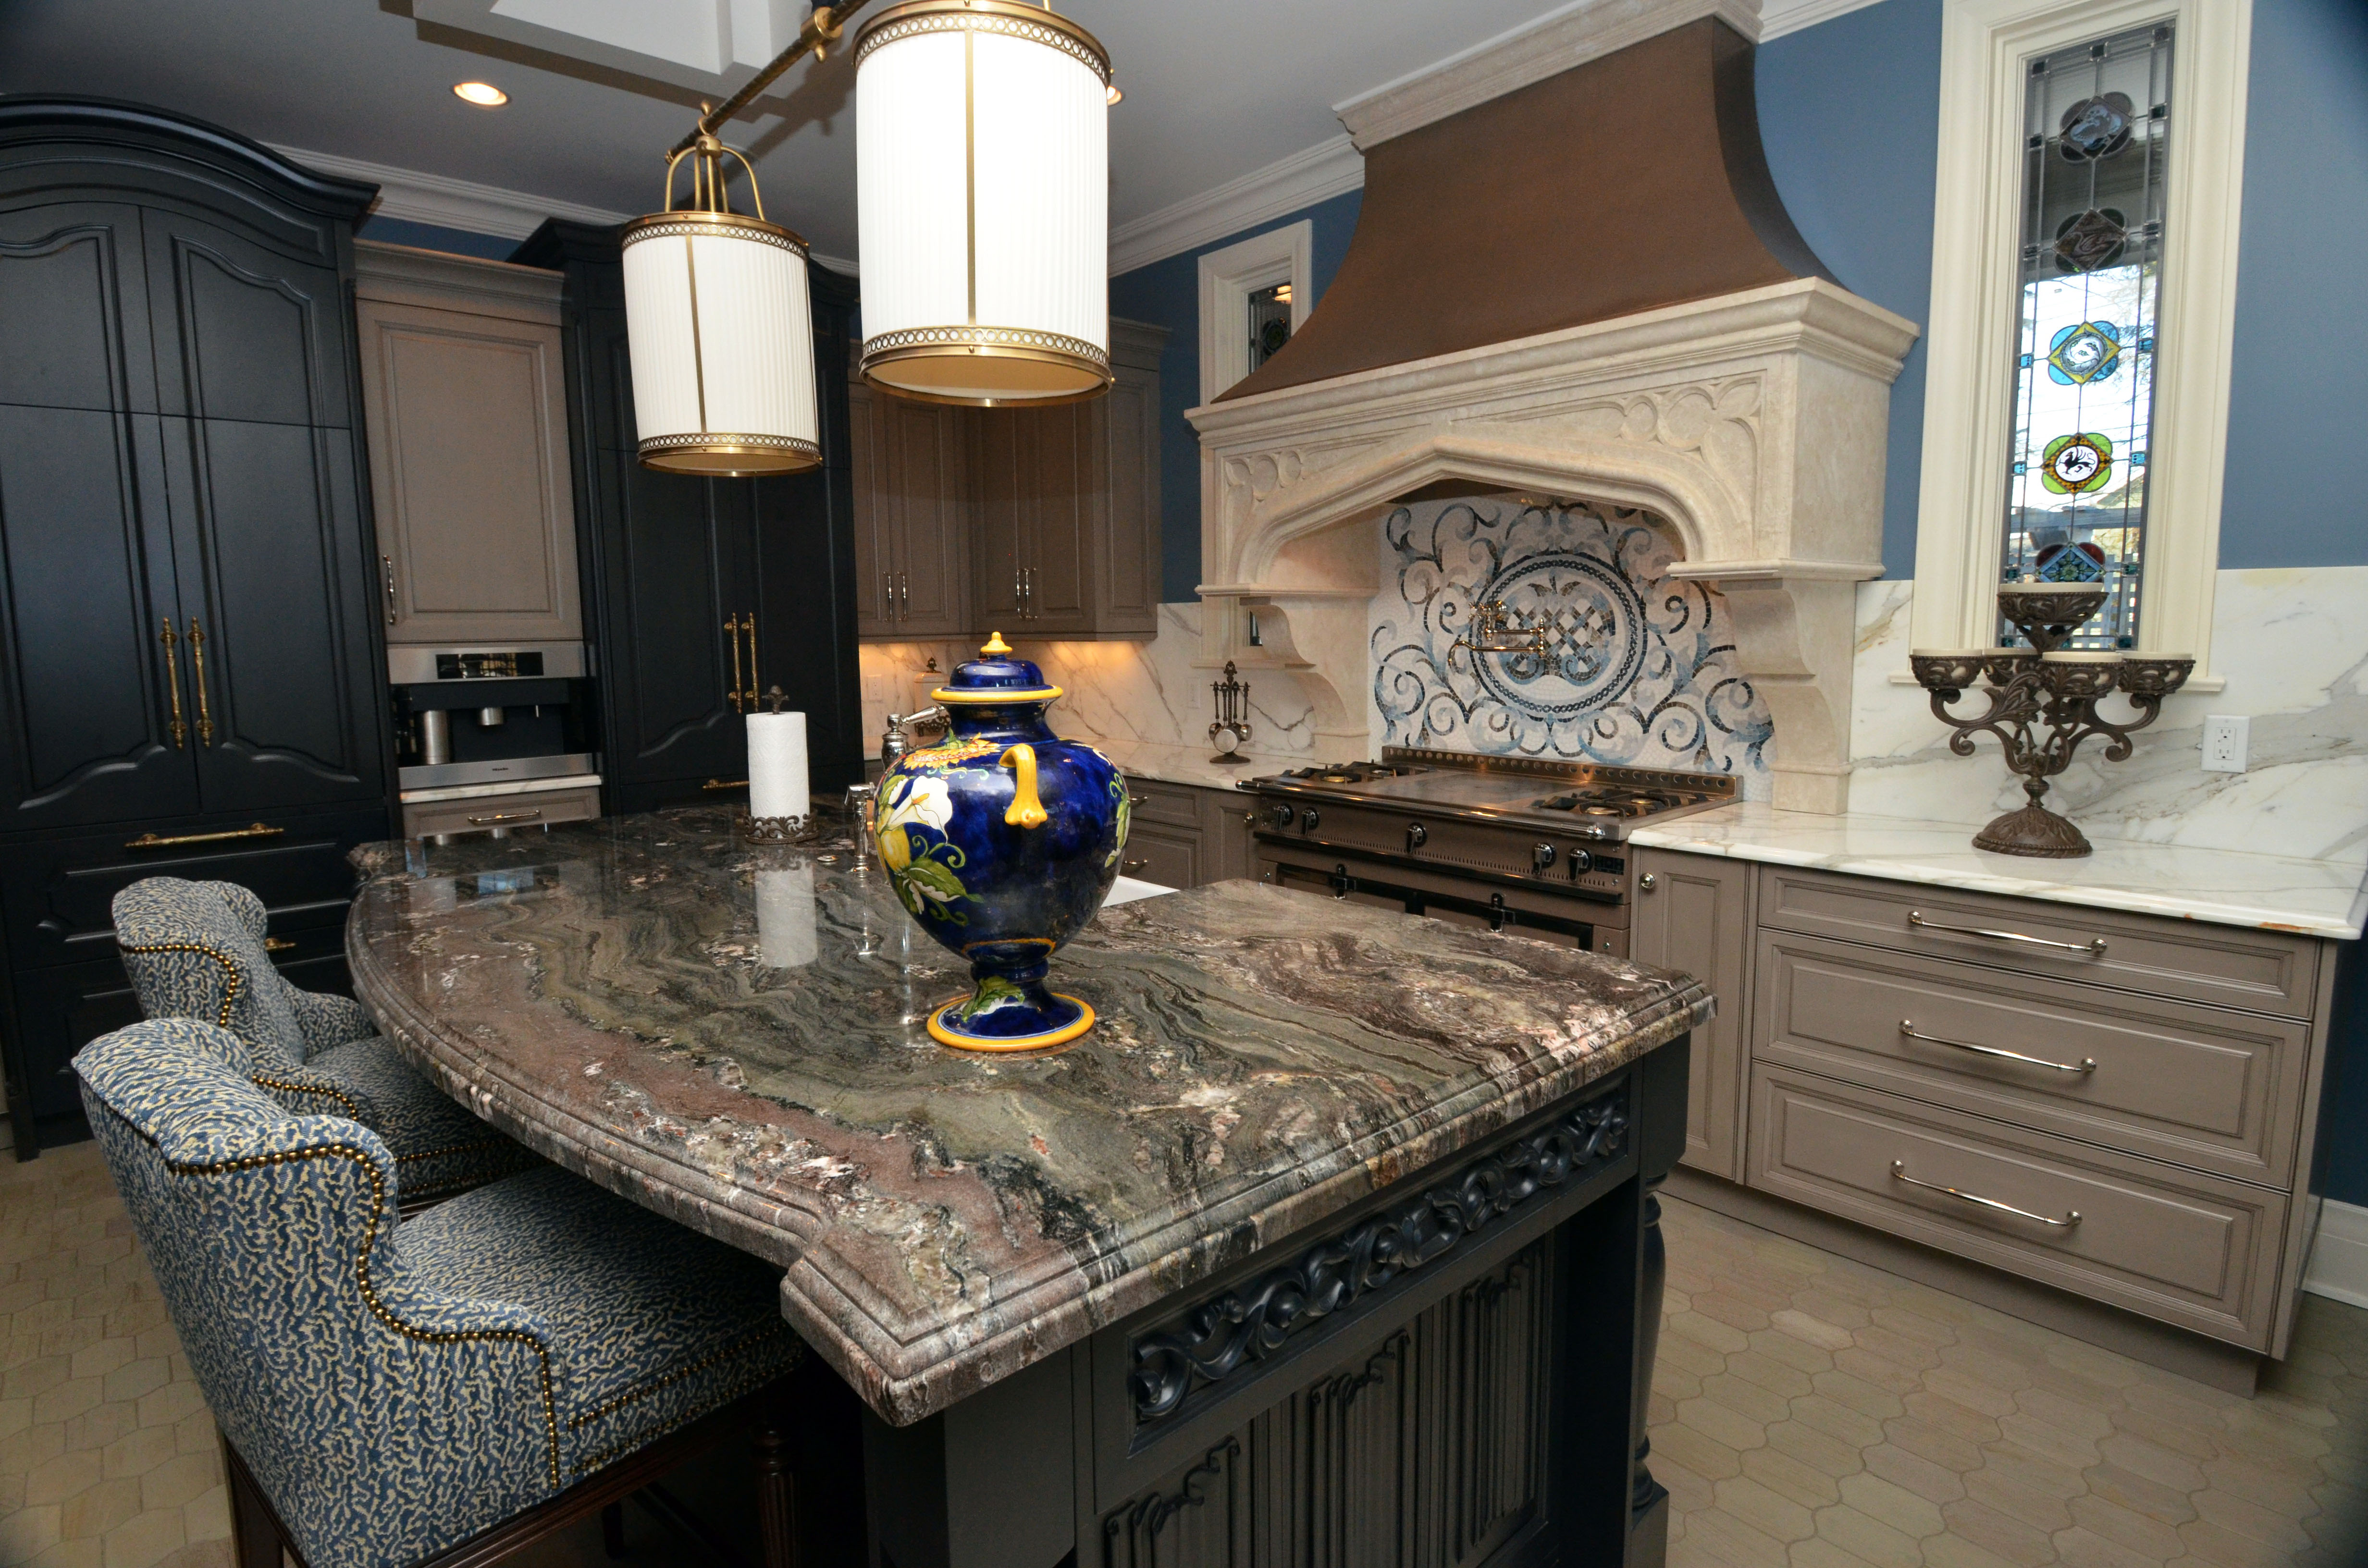 Countertop Edges-What is the best fit? - Italian Marble & Granite